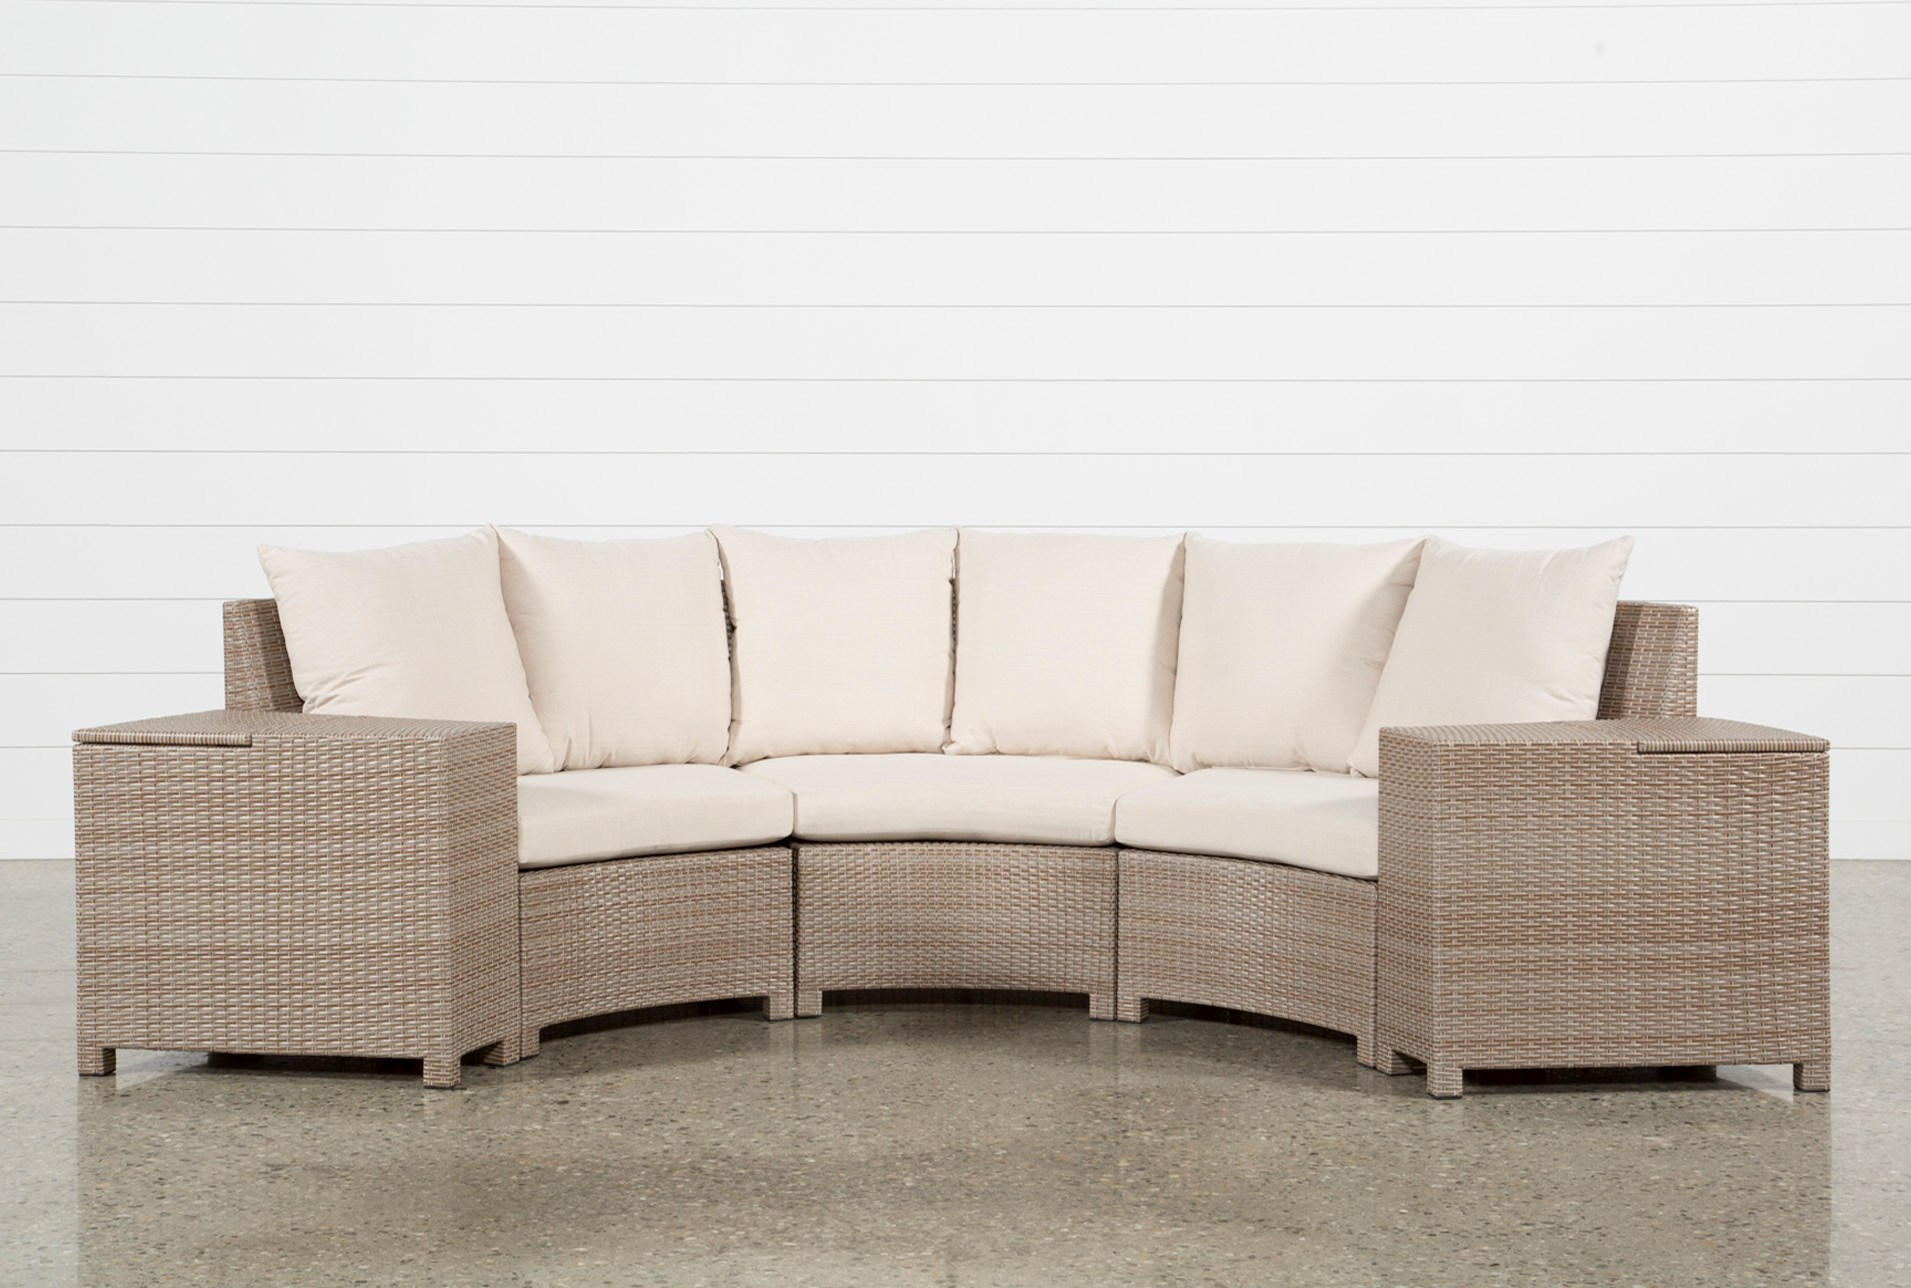 Toh Ibiza Sofa Set